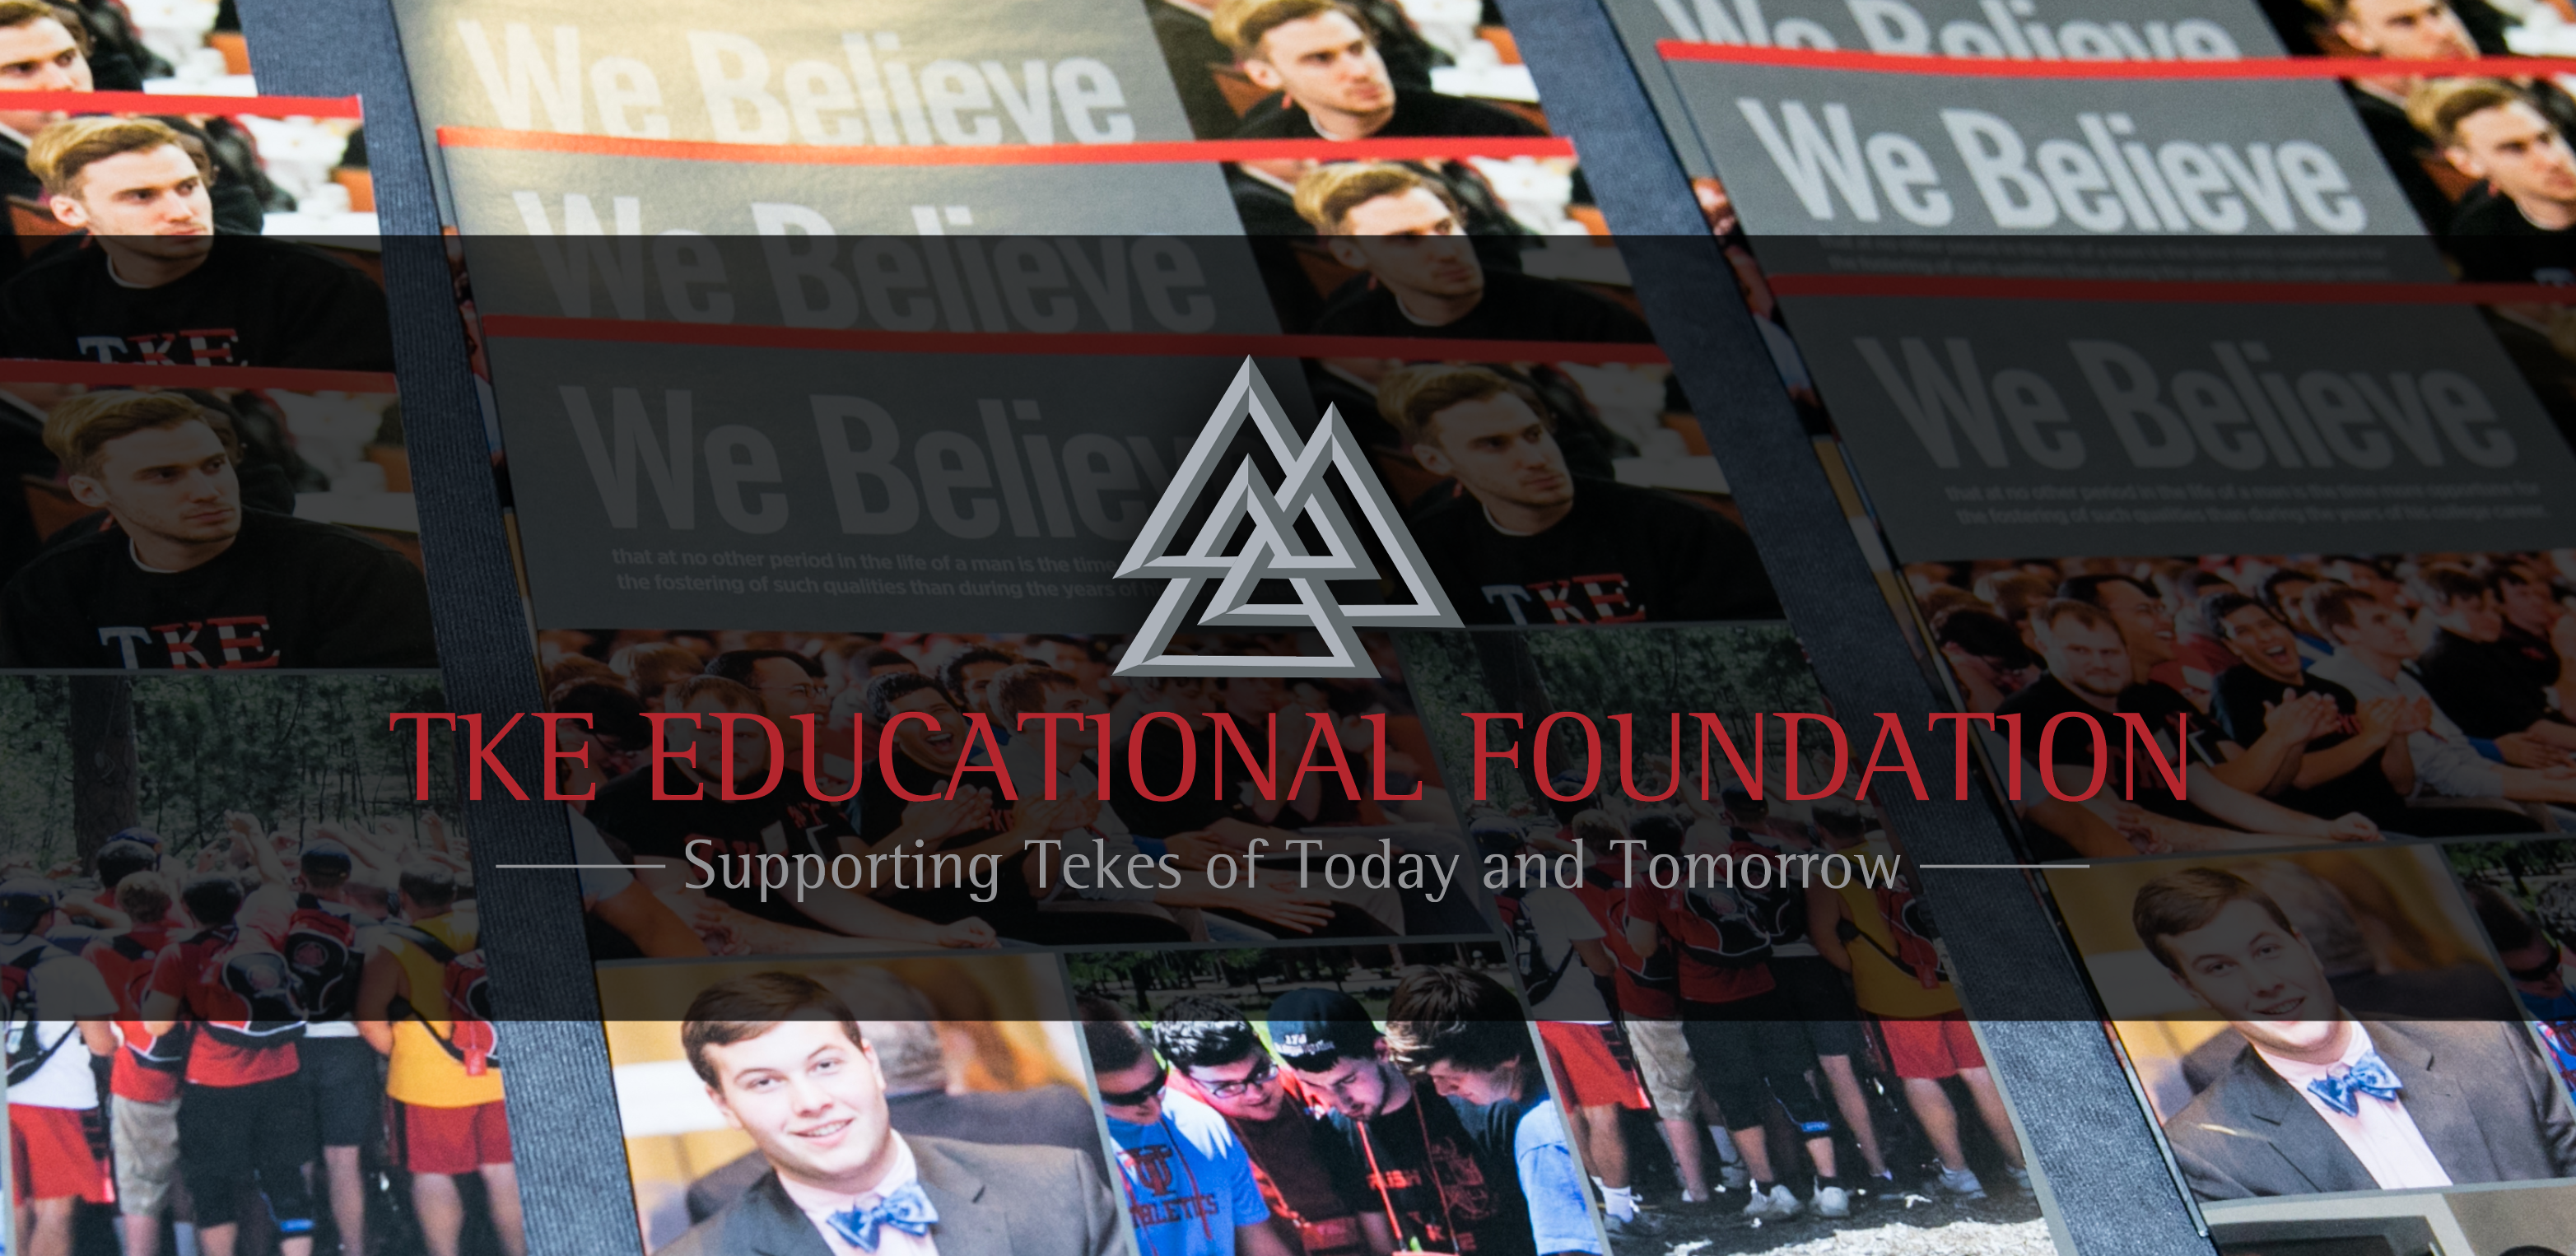 TKE Educational Foundation 2017-2018 Fiscal Year Highlights